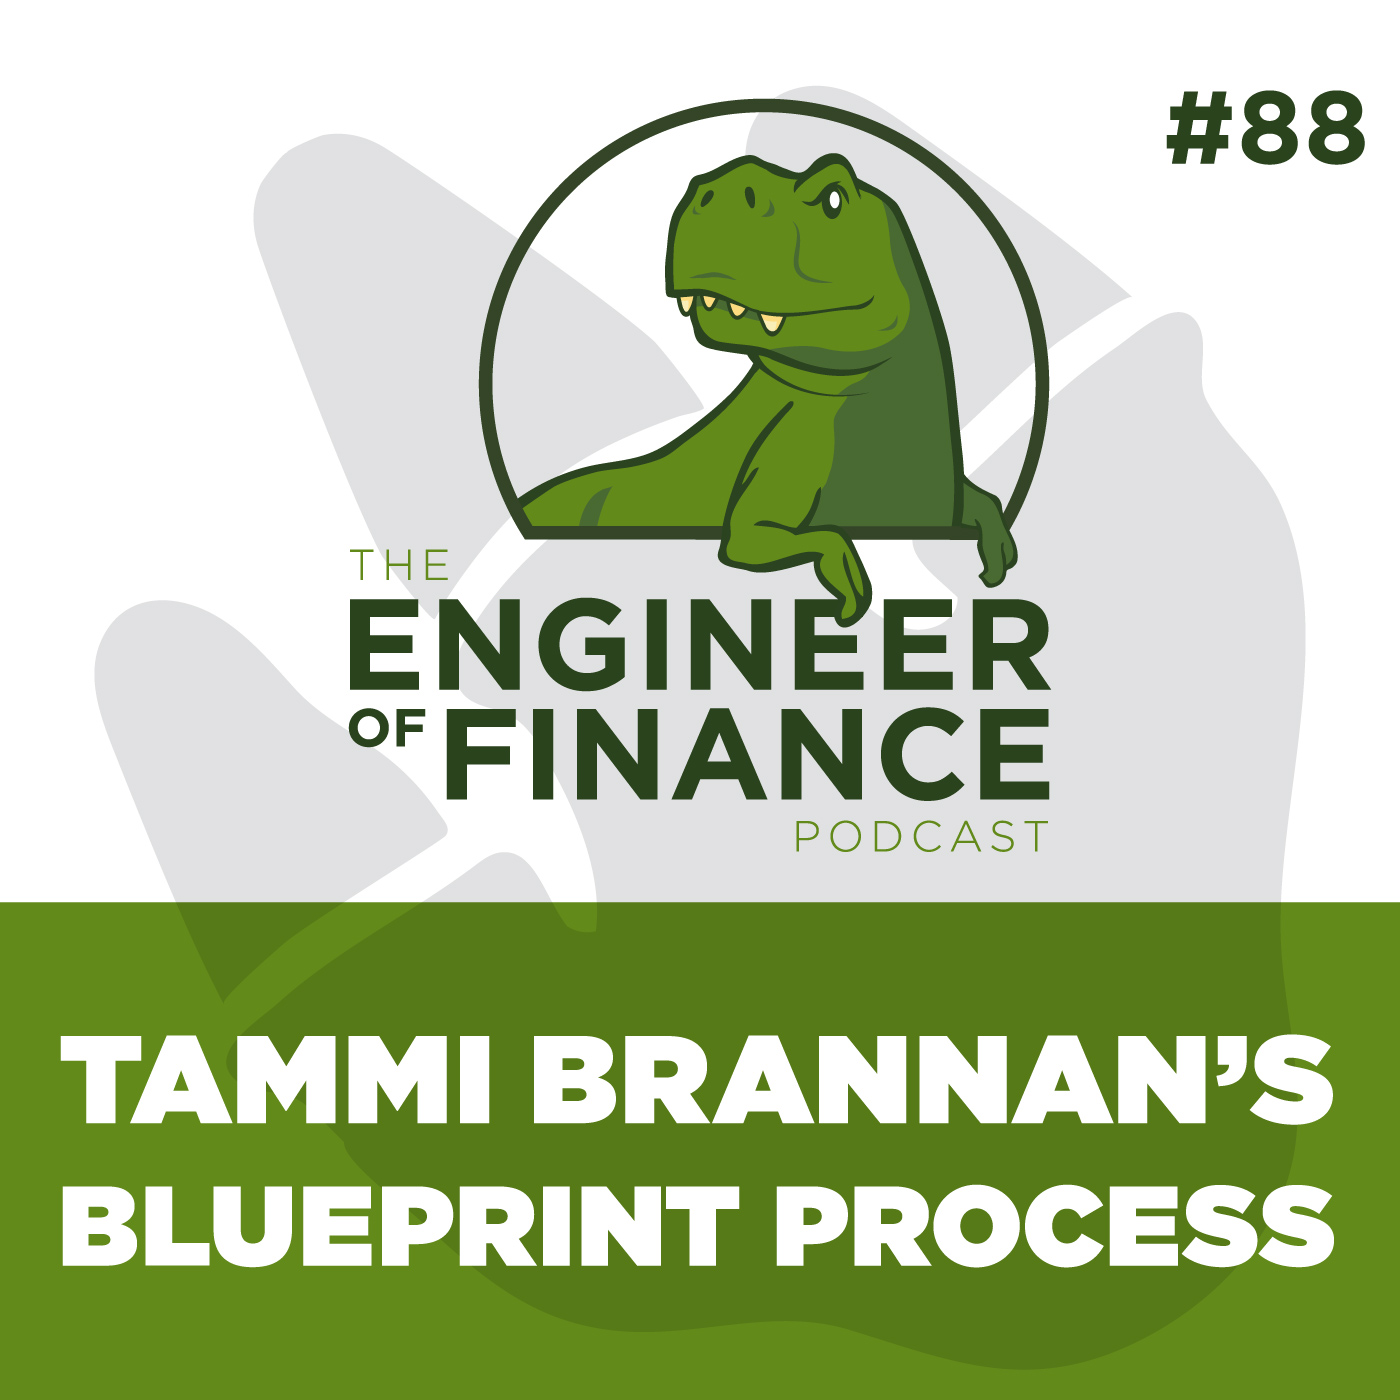 Tammi Brannan's Blueprint Process – Episode 88